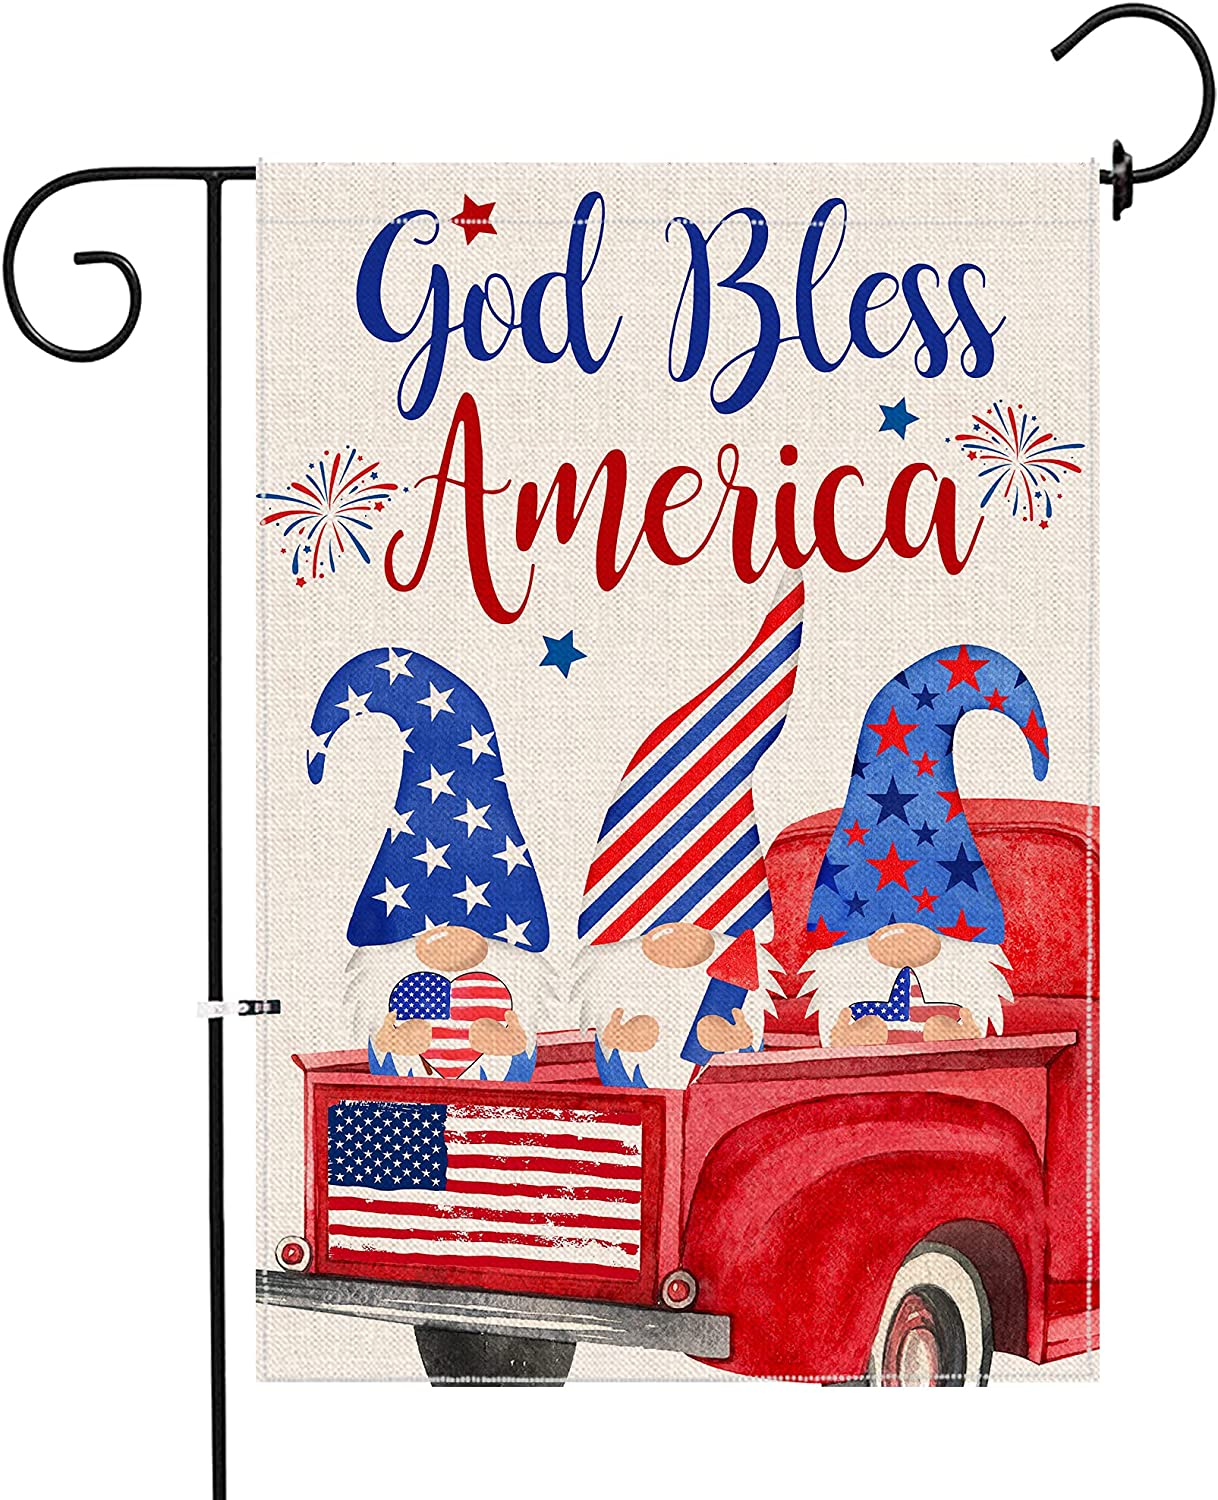 pinata 4th of July Garden Flag Patriotic 12x18 Double Sided Gnomes Holiday Fourth of July Independence Day Memorial American Flag USA Stars Stripes Decorations for Home Yard Outdoor Small Banner Sign